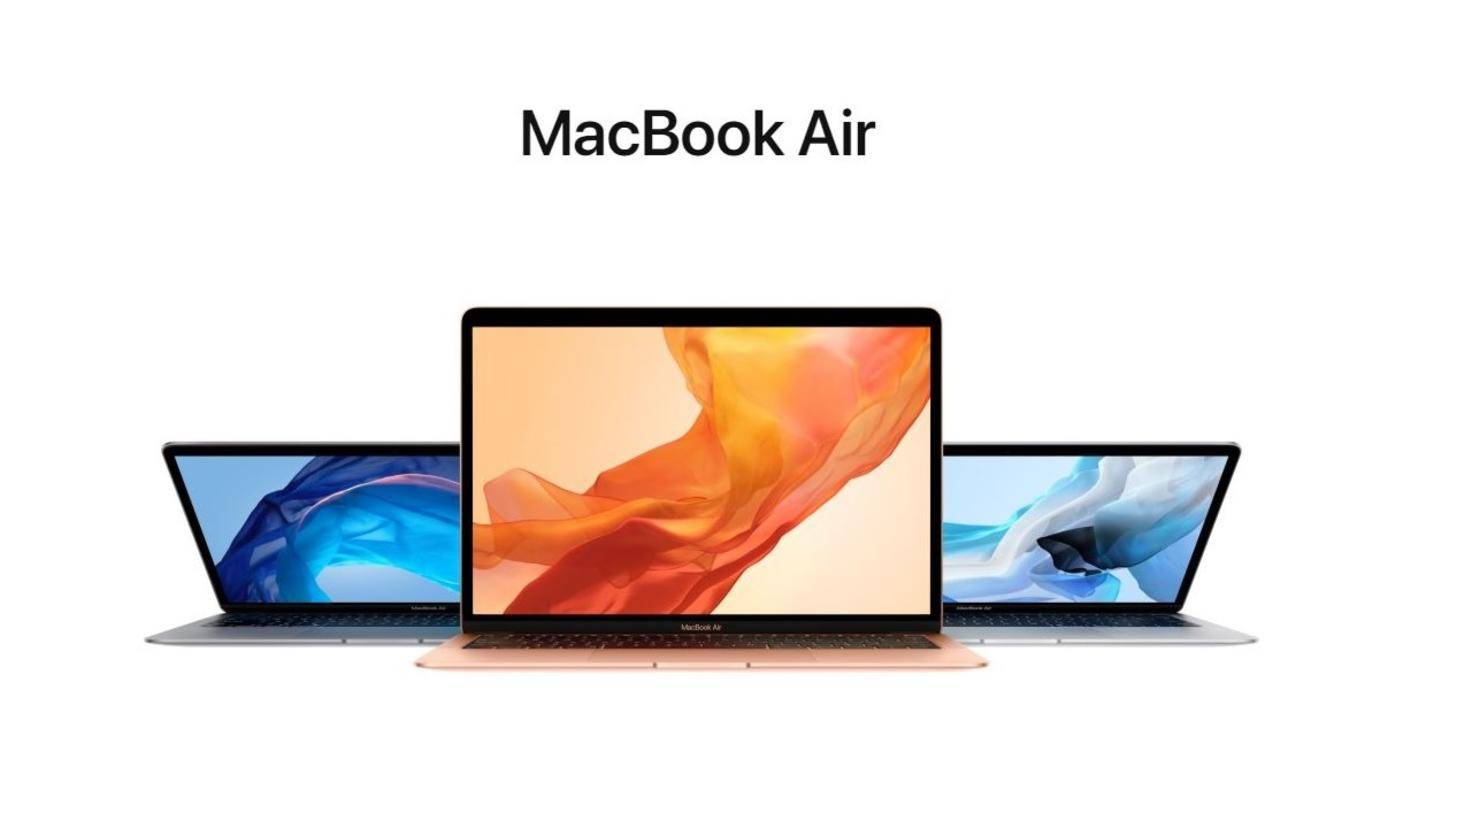 Das MacBook Air von 2019